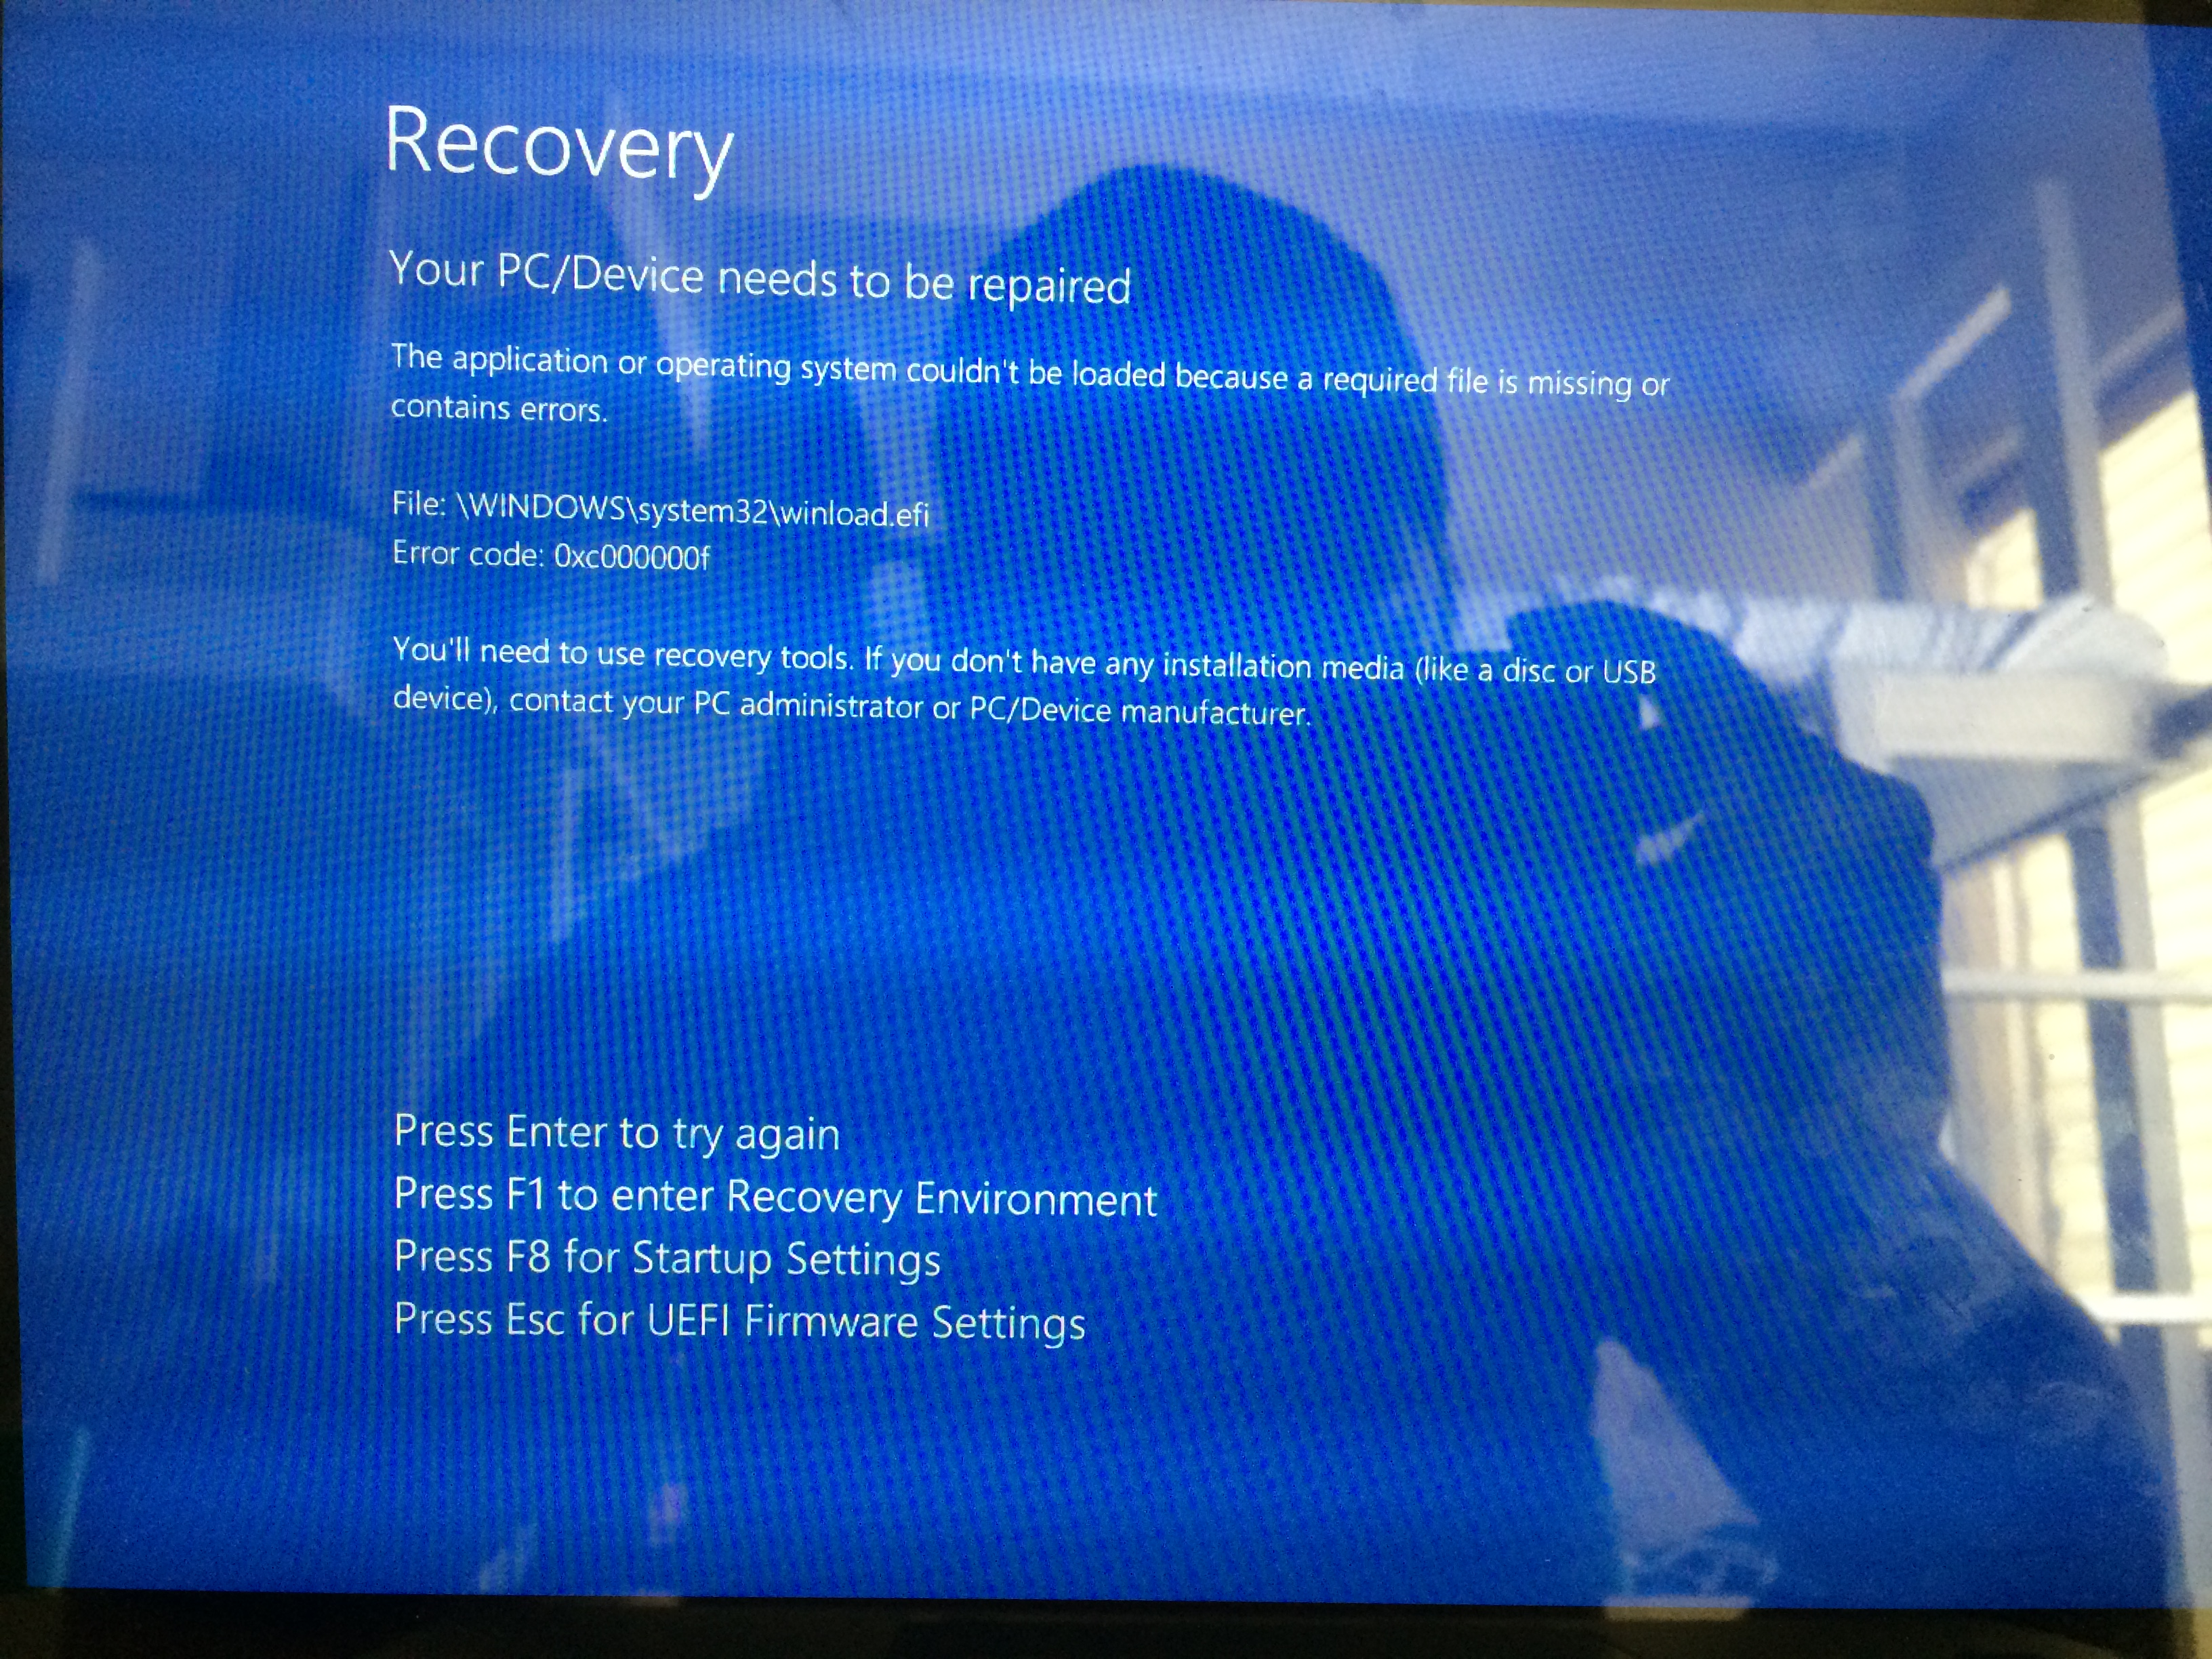 Hp Laptop Stuck In Recovery Mode Microsoft Community